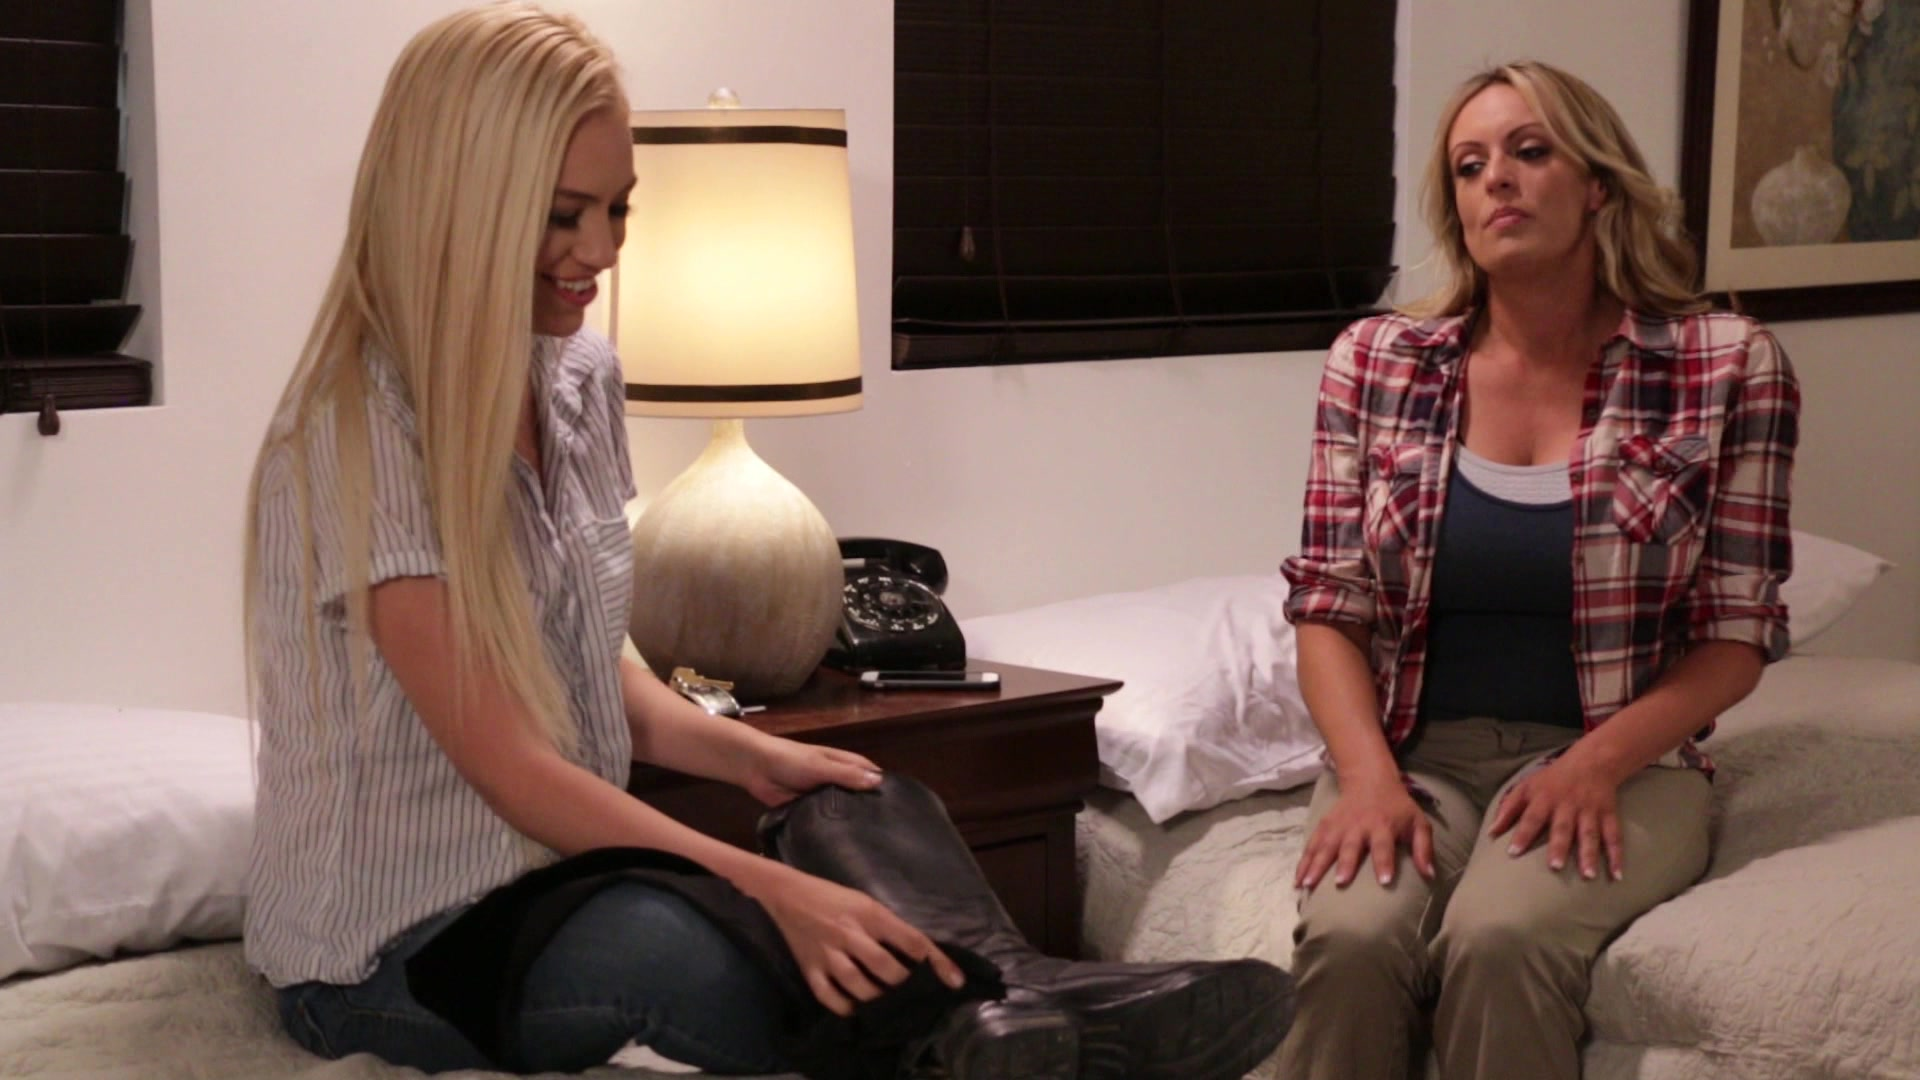 Scene with Stormy Daniels - image 2 out of 20